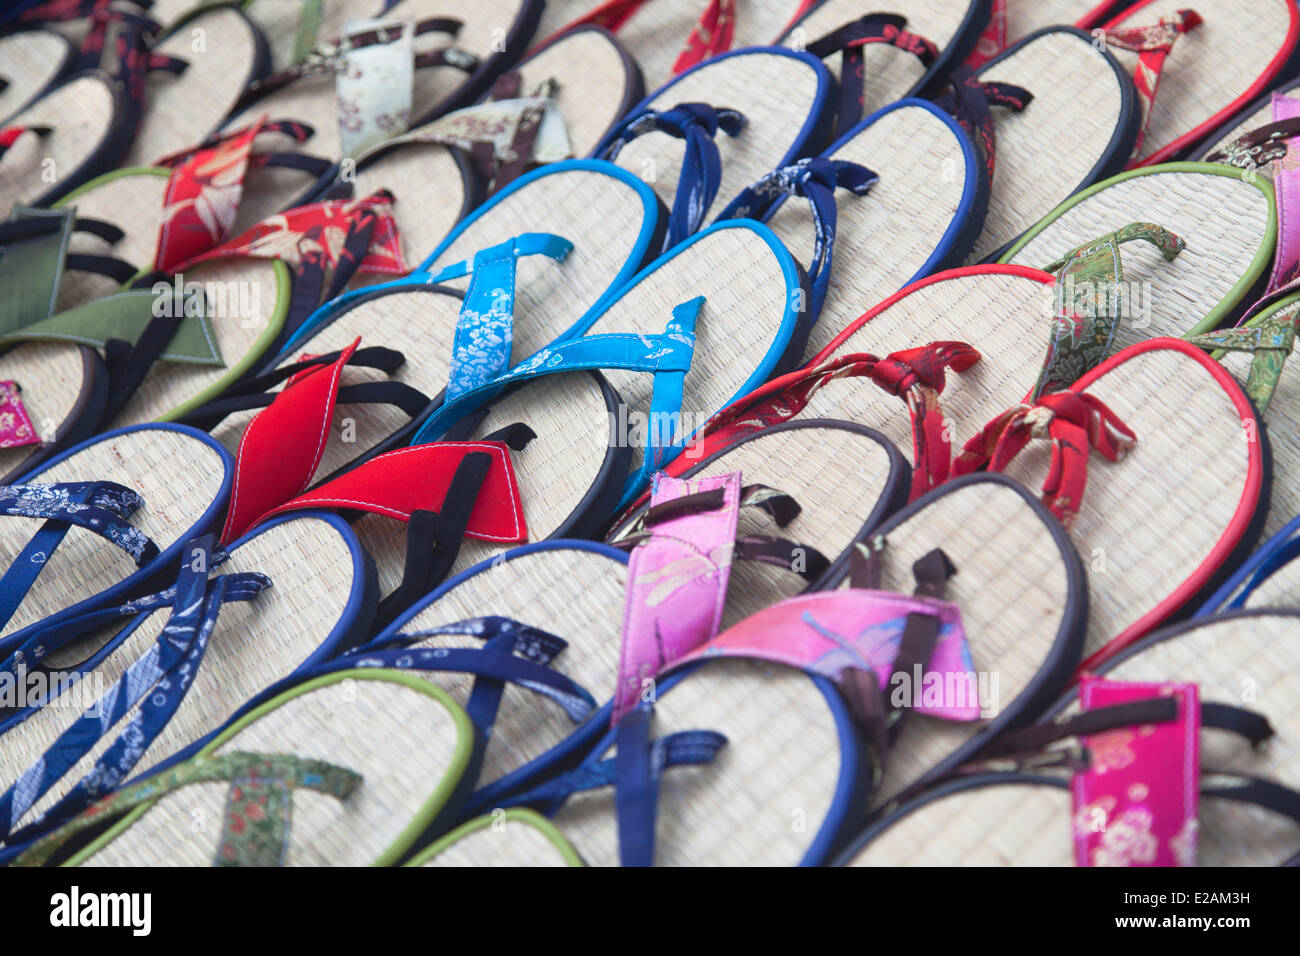 Flip-flops for sale in shop, Hoi An (UNESCO World Heritage Site), Quang Ham, Vietnam - Stock Image